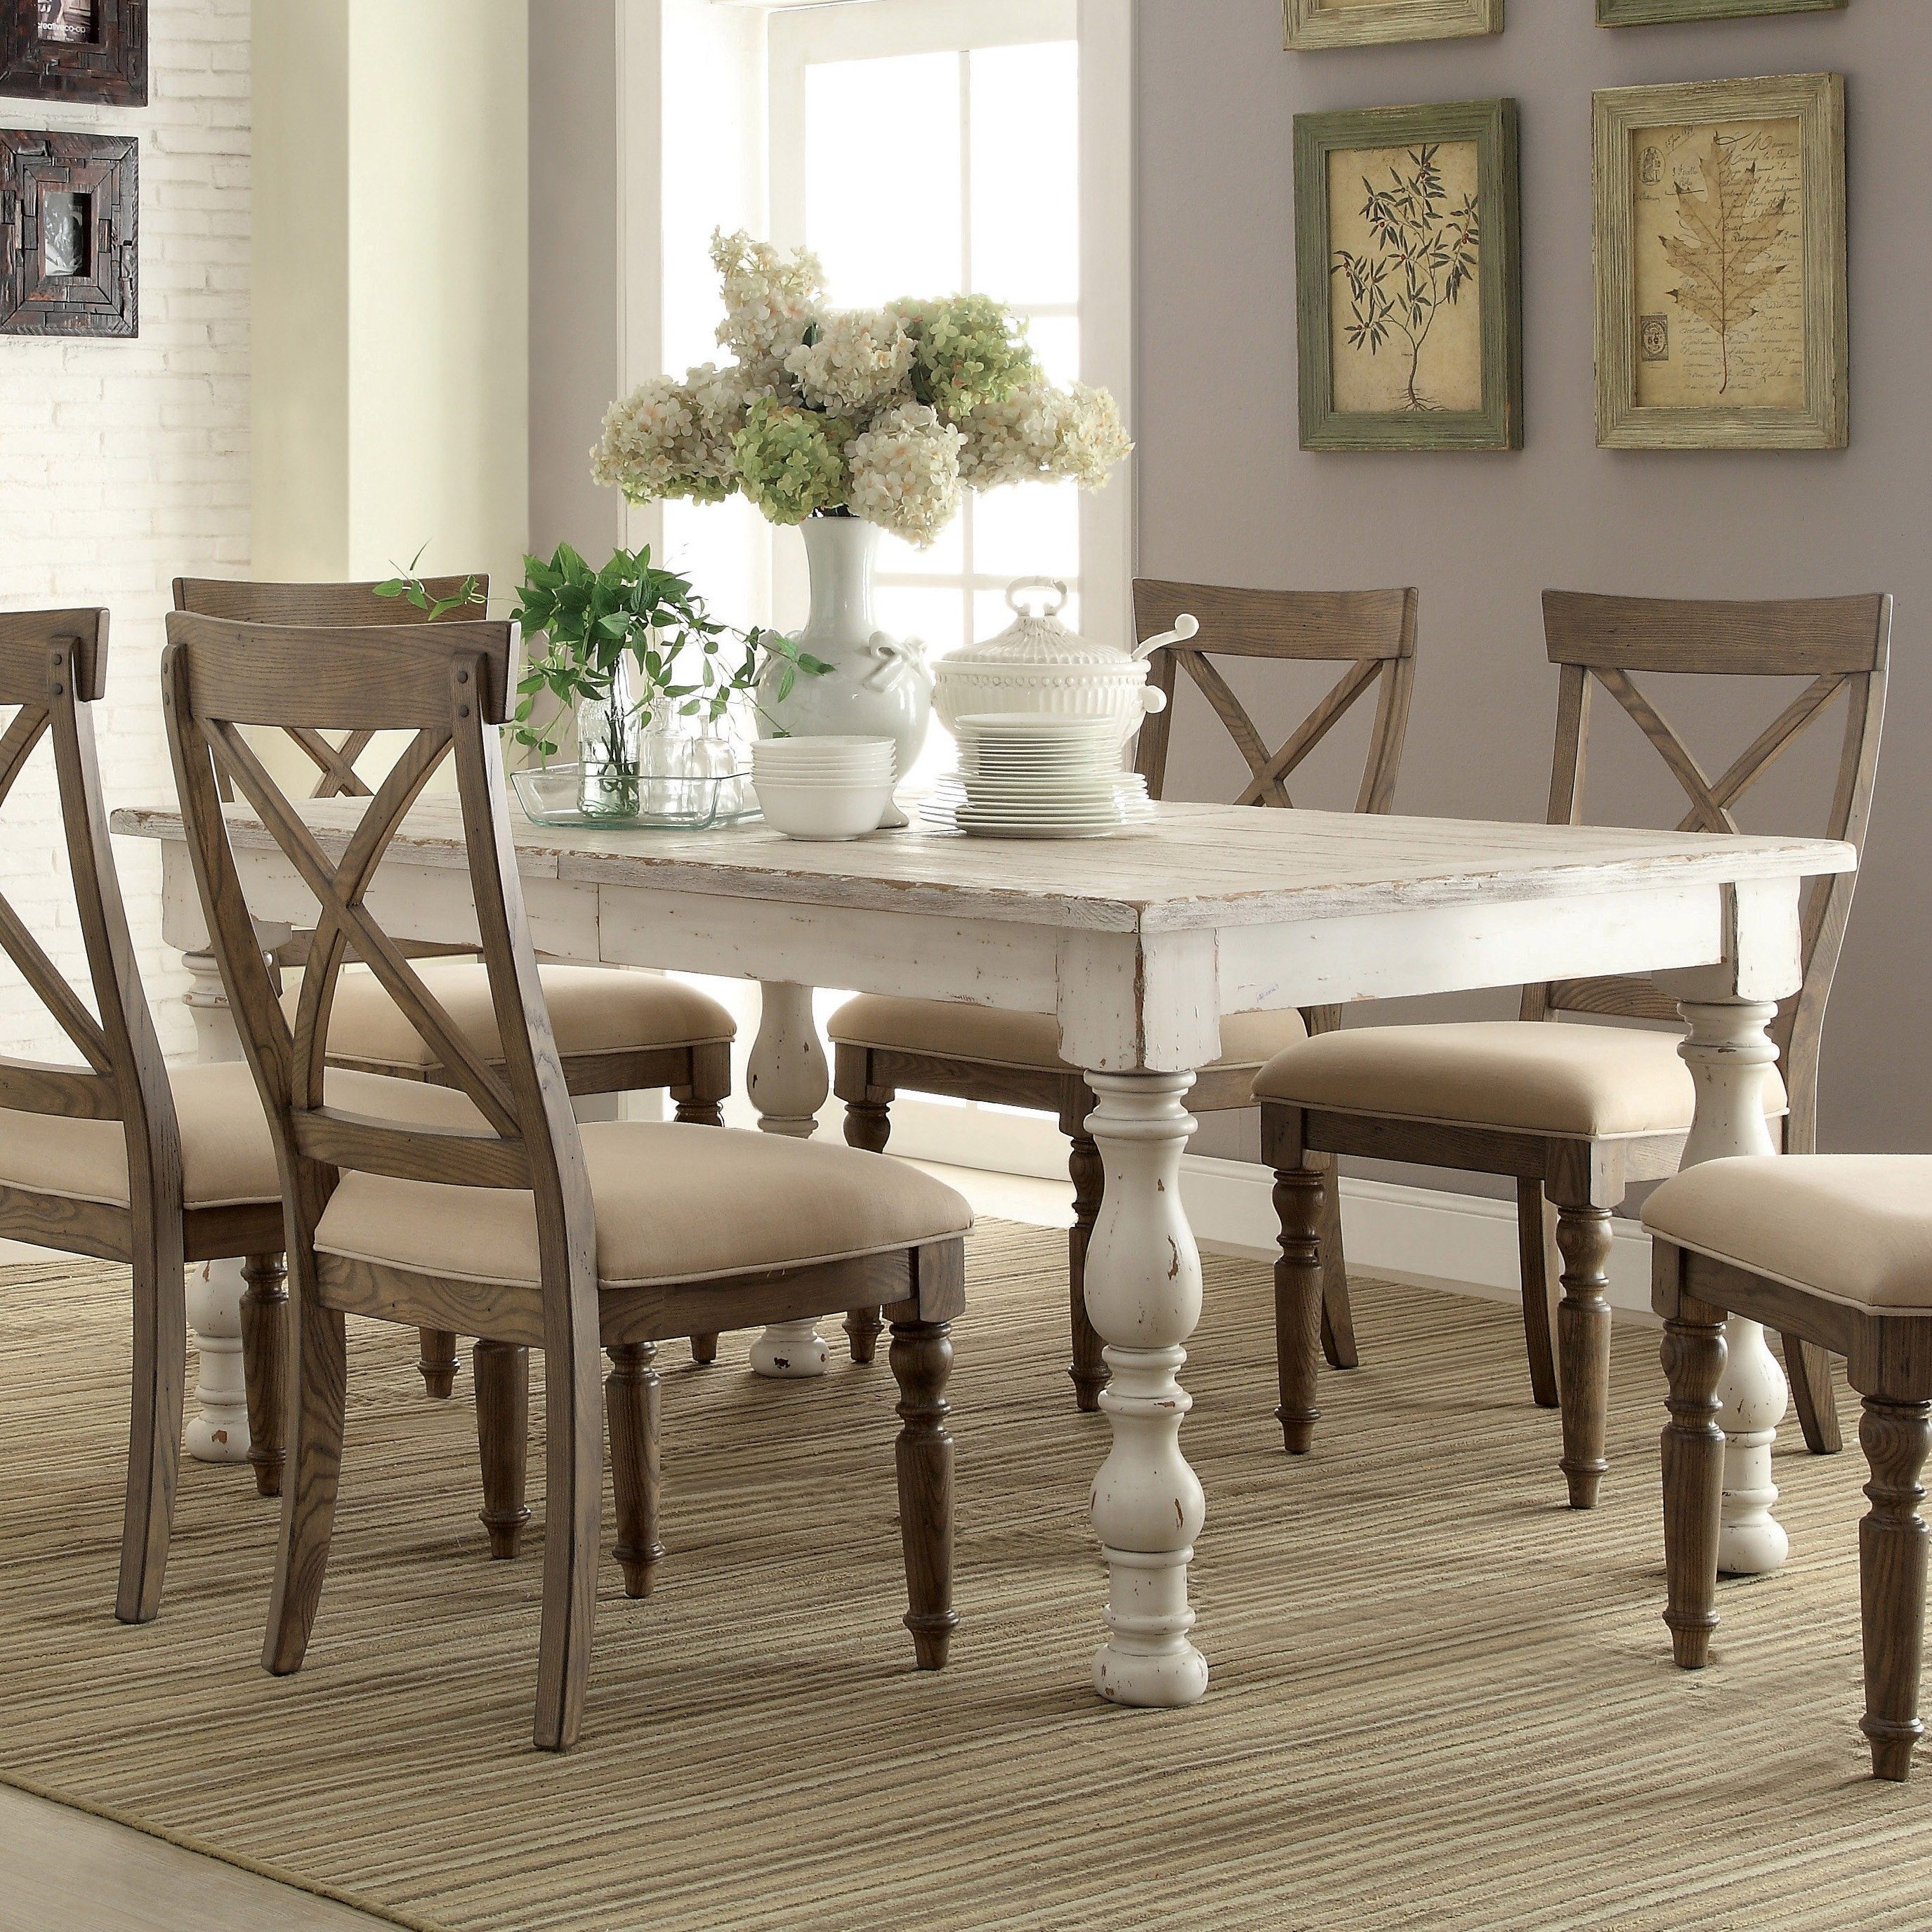 Aberdeen Wood Rectangular Dining Table and Chairs in Weathered Worn White  by Riverside Furniture. Aberdeen Wood Rectangular Dining Table and Chairs in Weathered